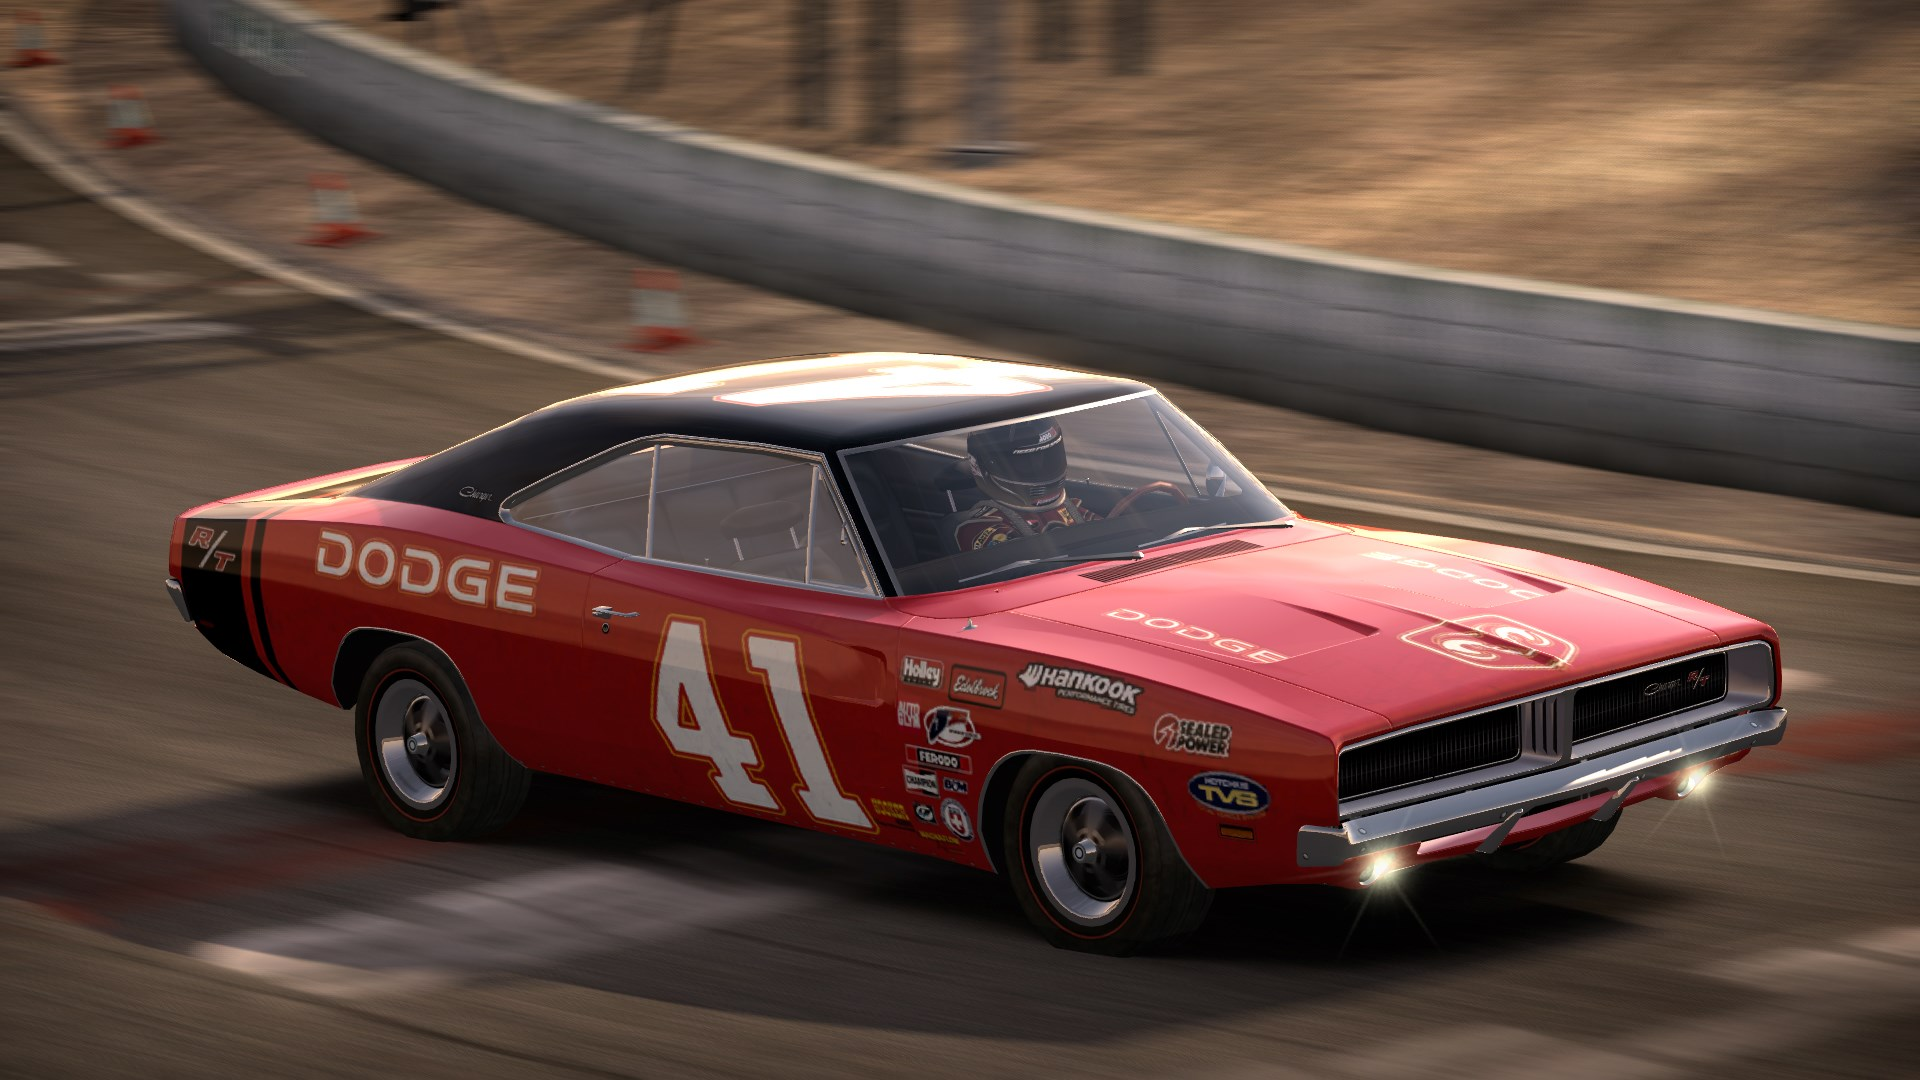 1920x1080-px-HDQ-Images-dodge-picture-by-Anastasia-Cook-for-pocketfullofgrace-com-wallpaper-wp360850